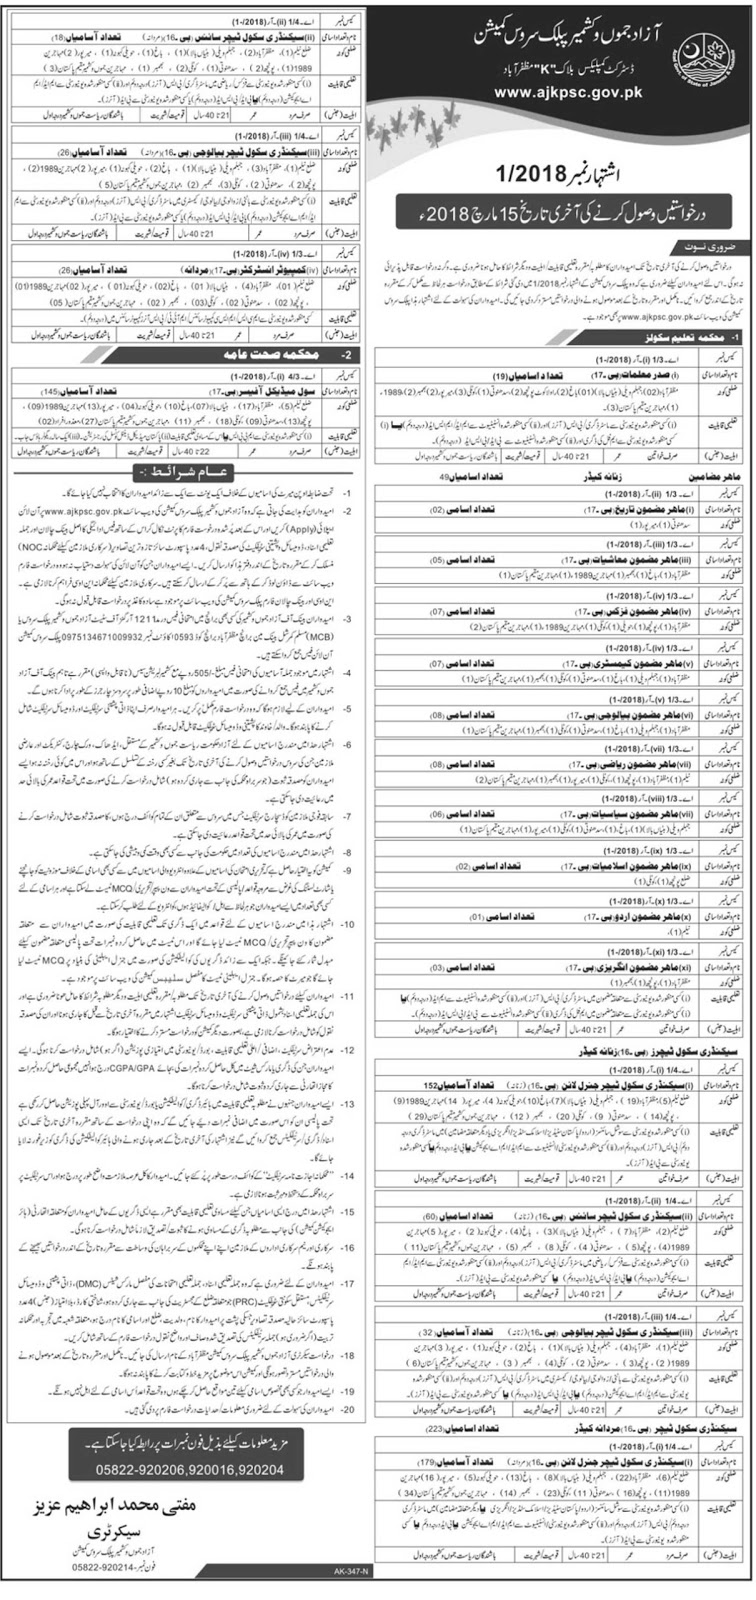 Latest AJKPSC Jobs 2018 Consolidated Advertisement No. 1/2018 in Azak Jammu and Kashmir Public Service Commission